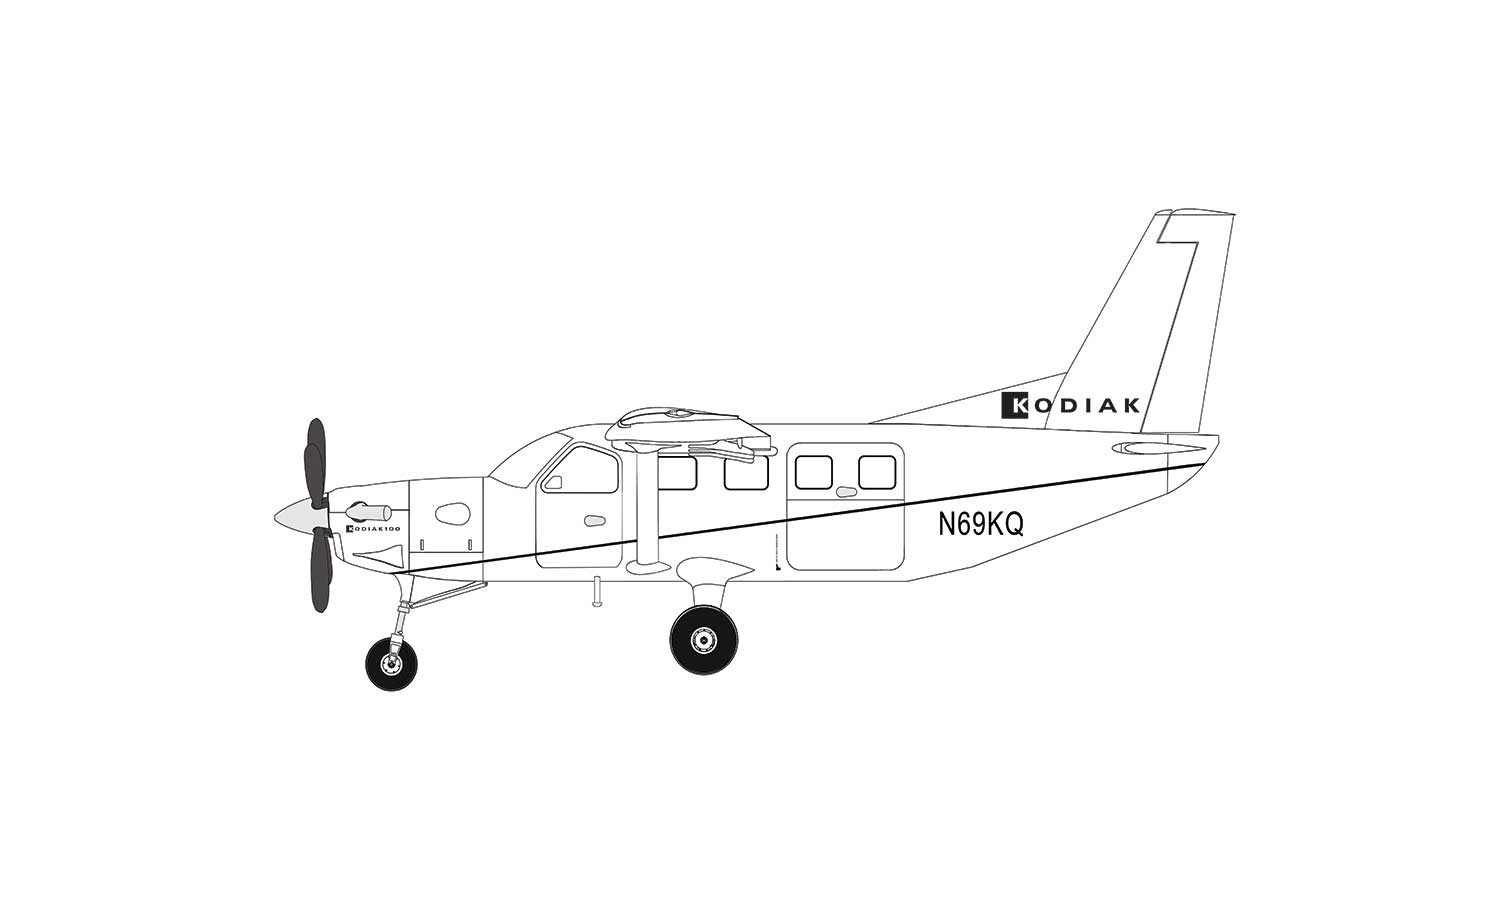 American General Aircraft Electrical Diagram Schematic Diagrams Wiring For A Airplane Meet The Quest Kodiak Advanced Stol Turboprop Manual